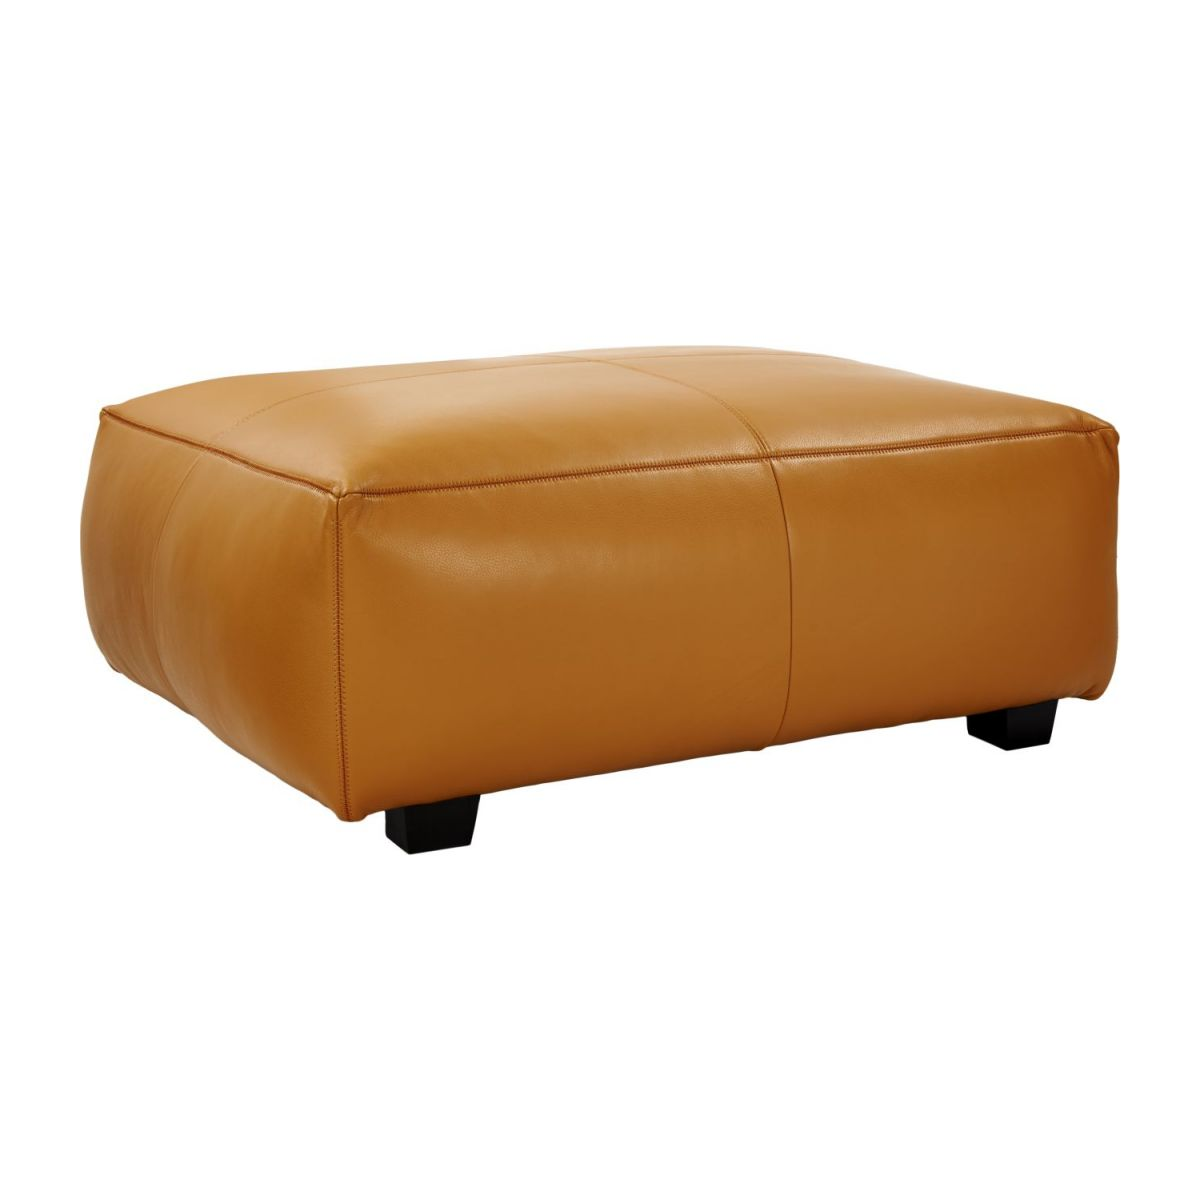 Footstool in Savoy semi-aniline leather, cognac n°1